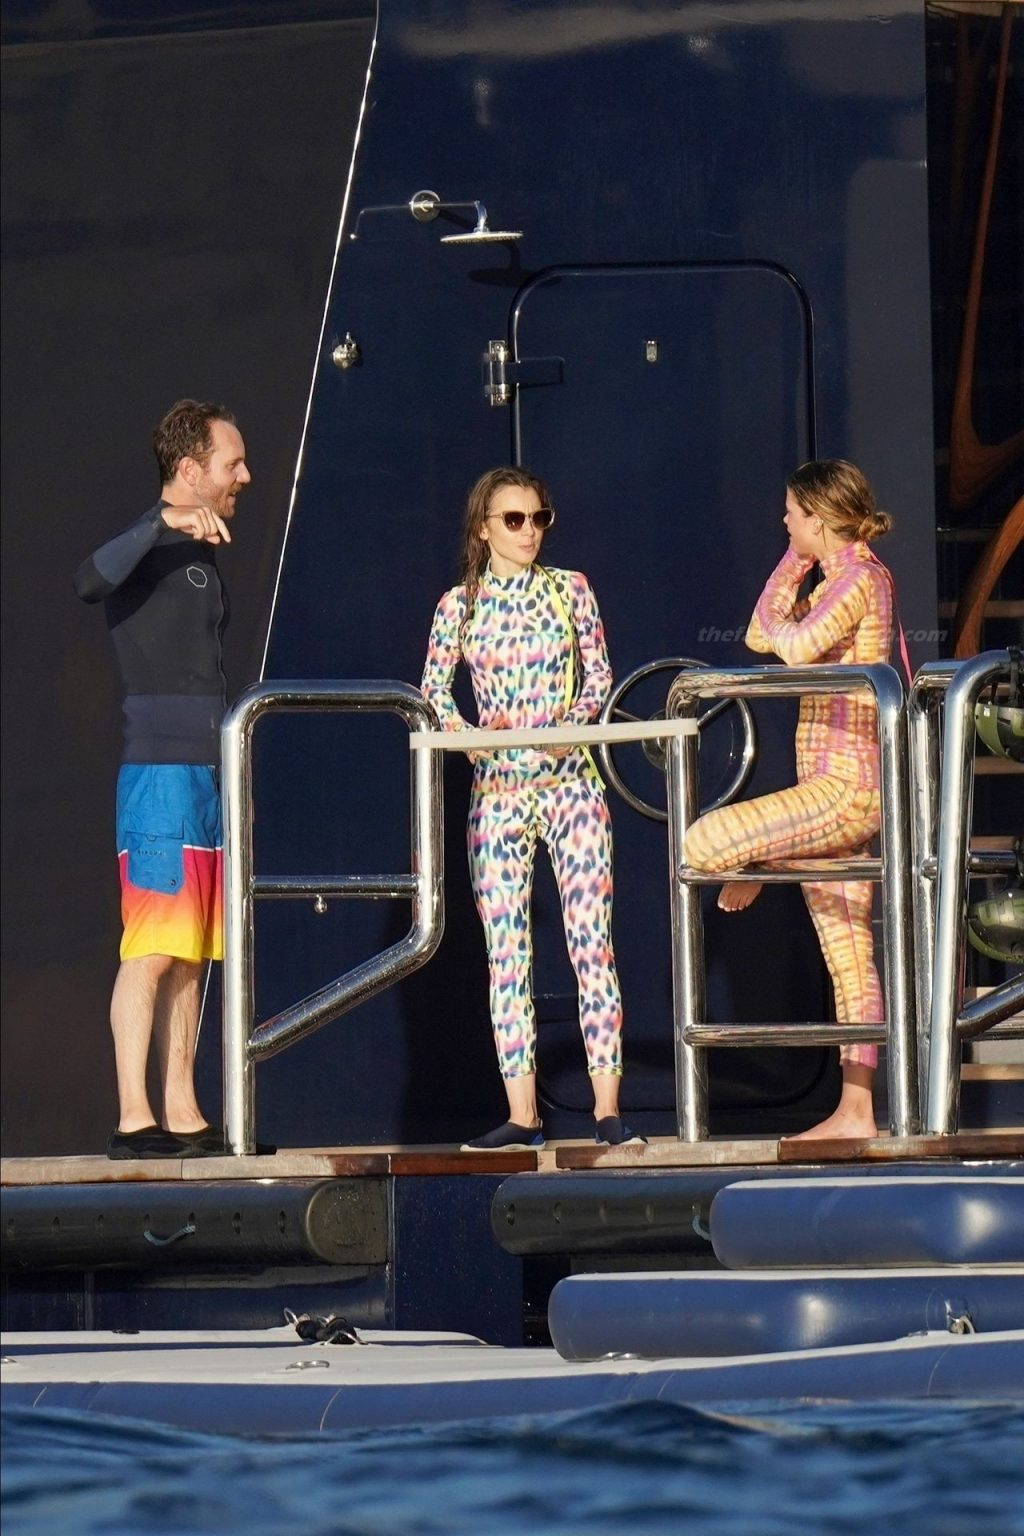 Sofia Richie & Lily Collins Spend Christmas Holidays Together in St. Barths (84 Photos)